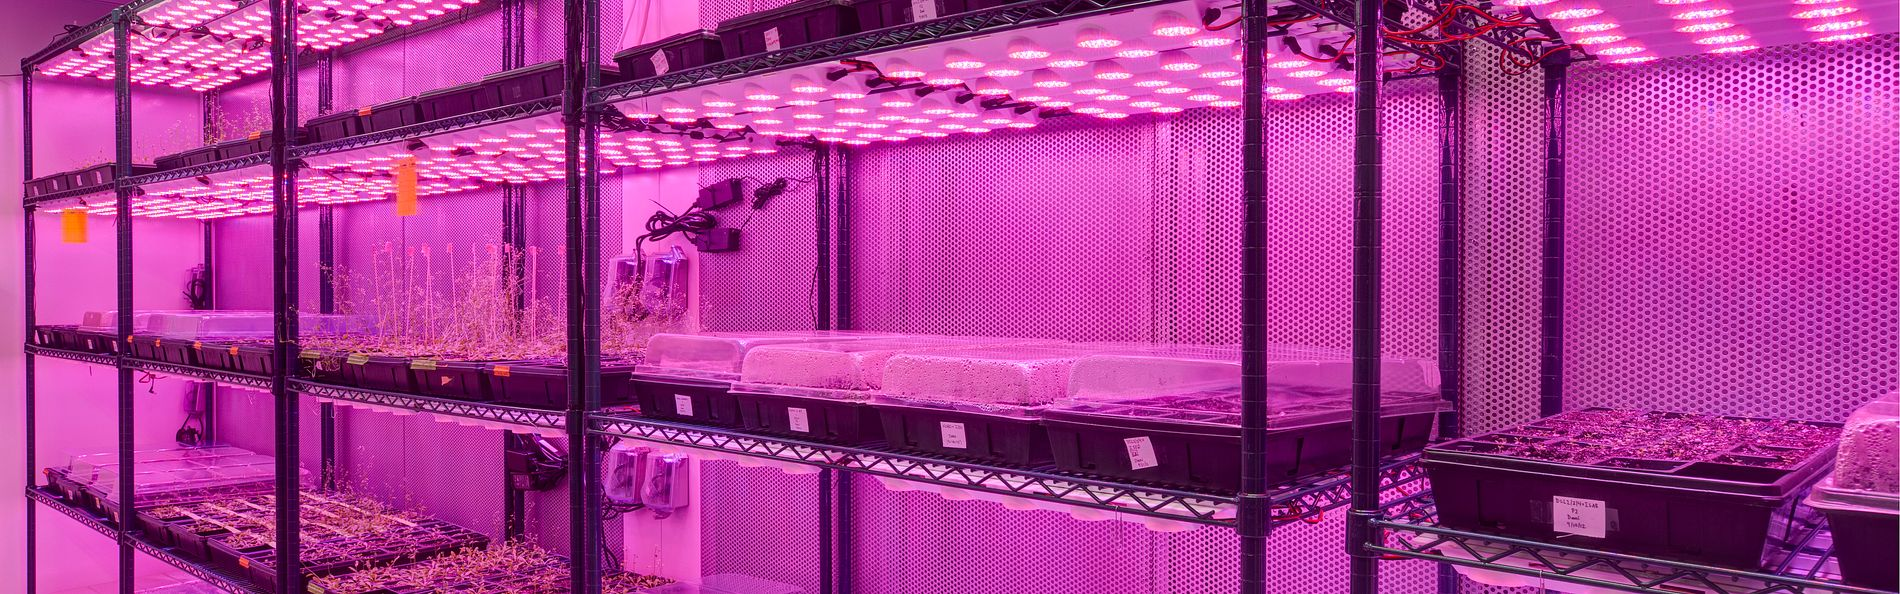 Support rooms include cold rooms, dark rooms, tissue culture, growth chamber, freezer farm, crystallography, low ozone, x-ray, robotics, isotope, warm room, and plant growth